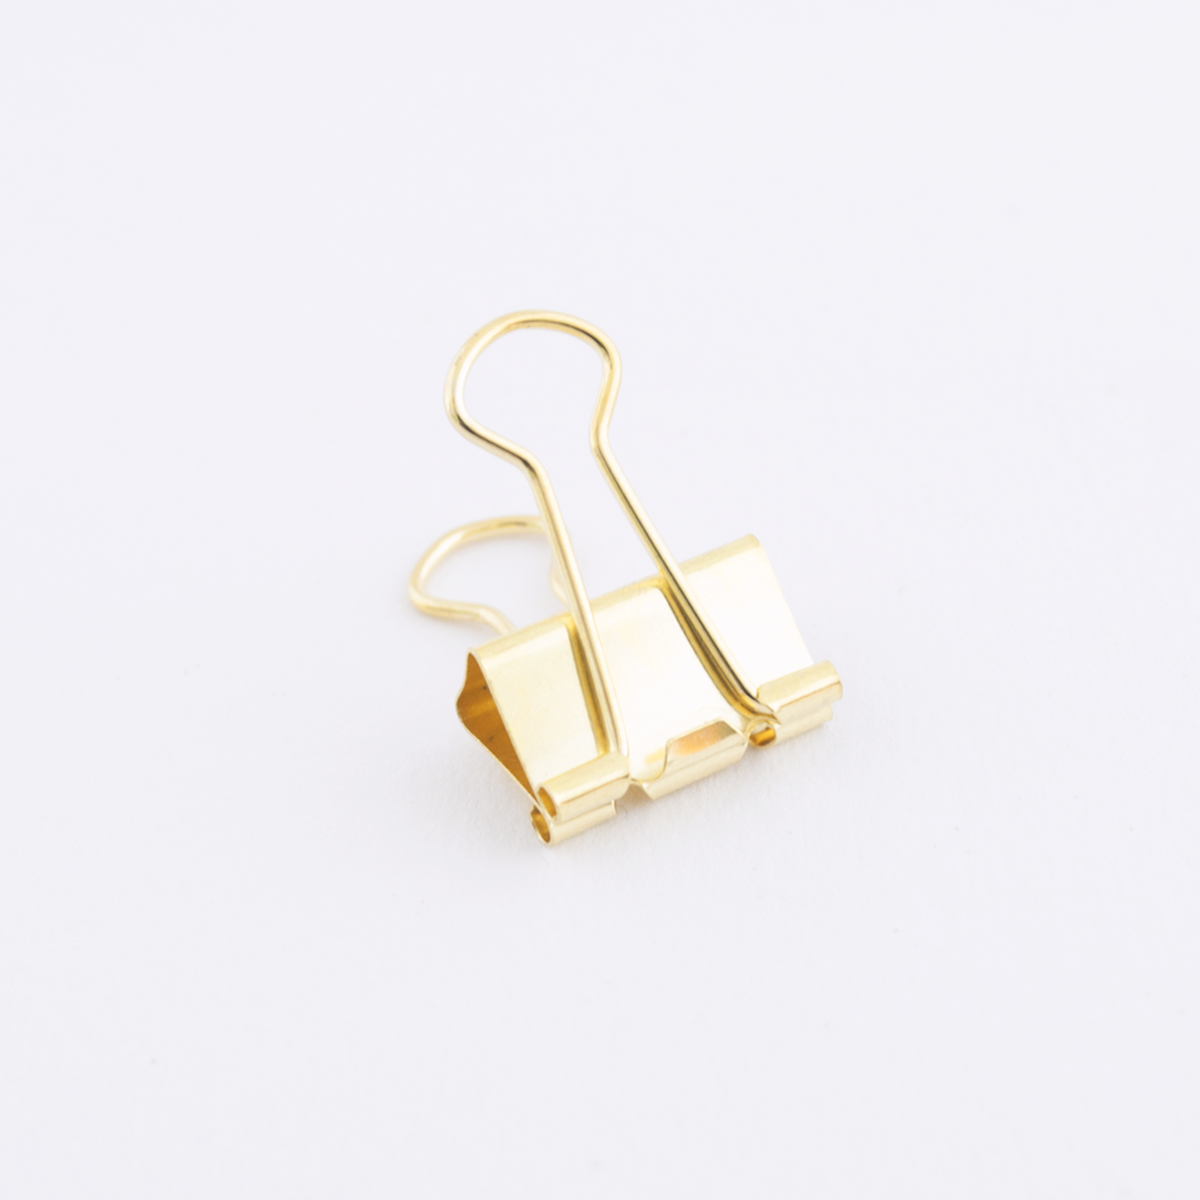 medium gold binder clip